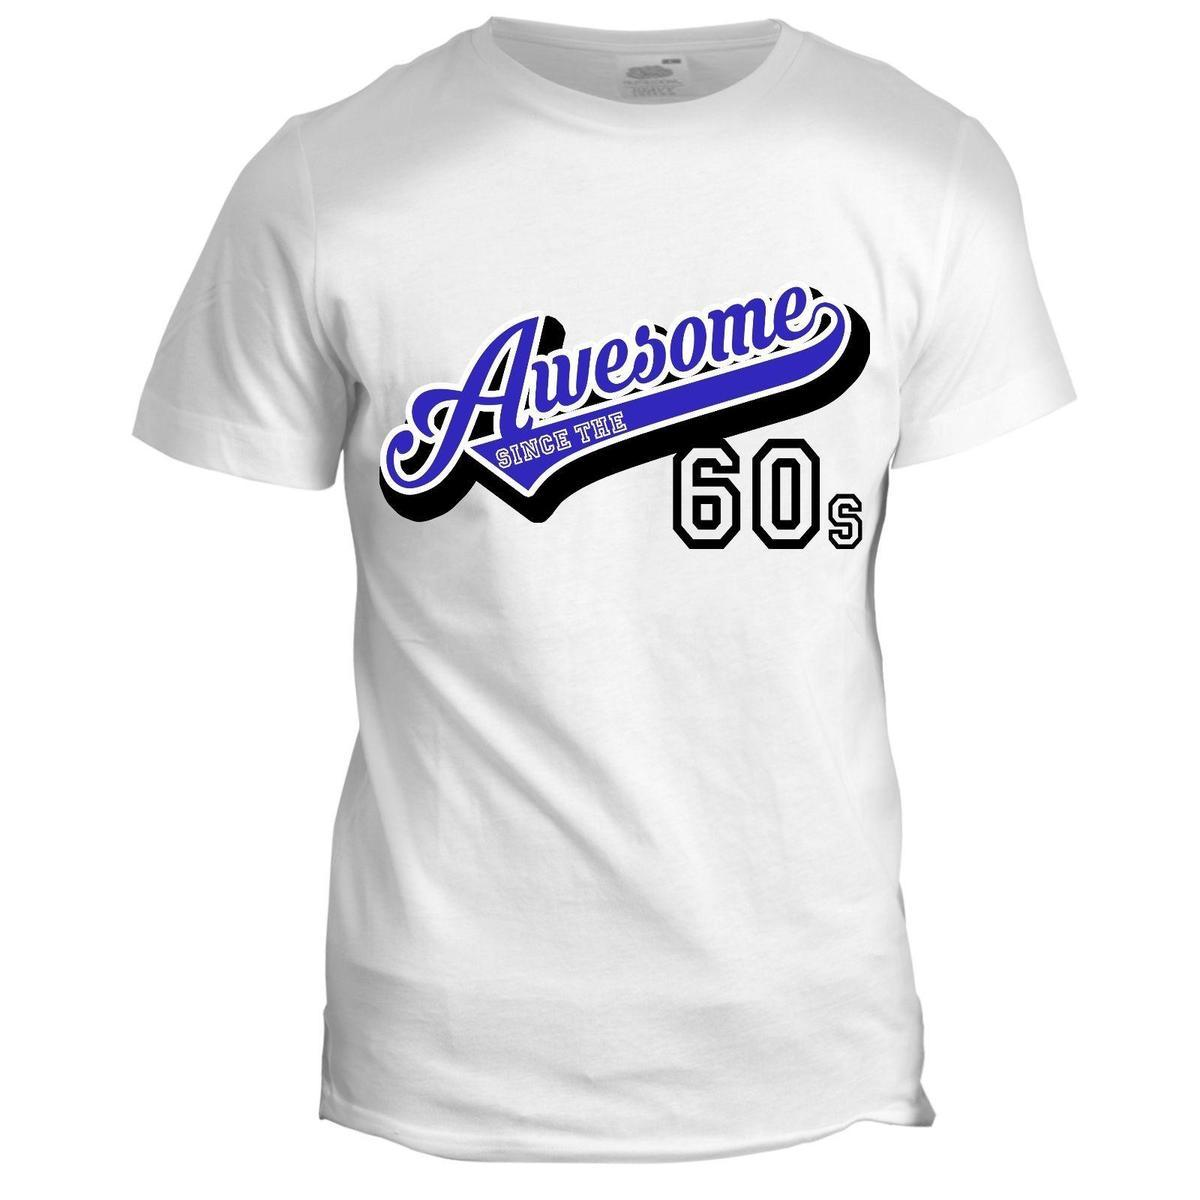 Awesome Since 60s Dad Father Grandad Birthday New Year Gift Present T Shirt Fashion Shirt Tee Shirt Designs From Pxue3301, $12.14| DHgate.Com